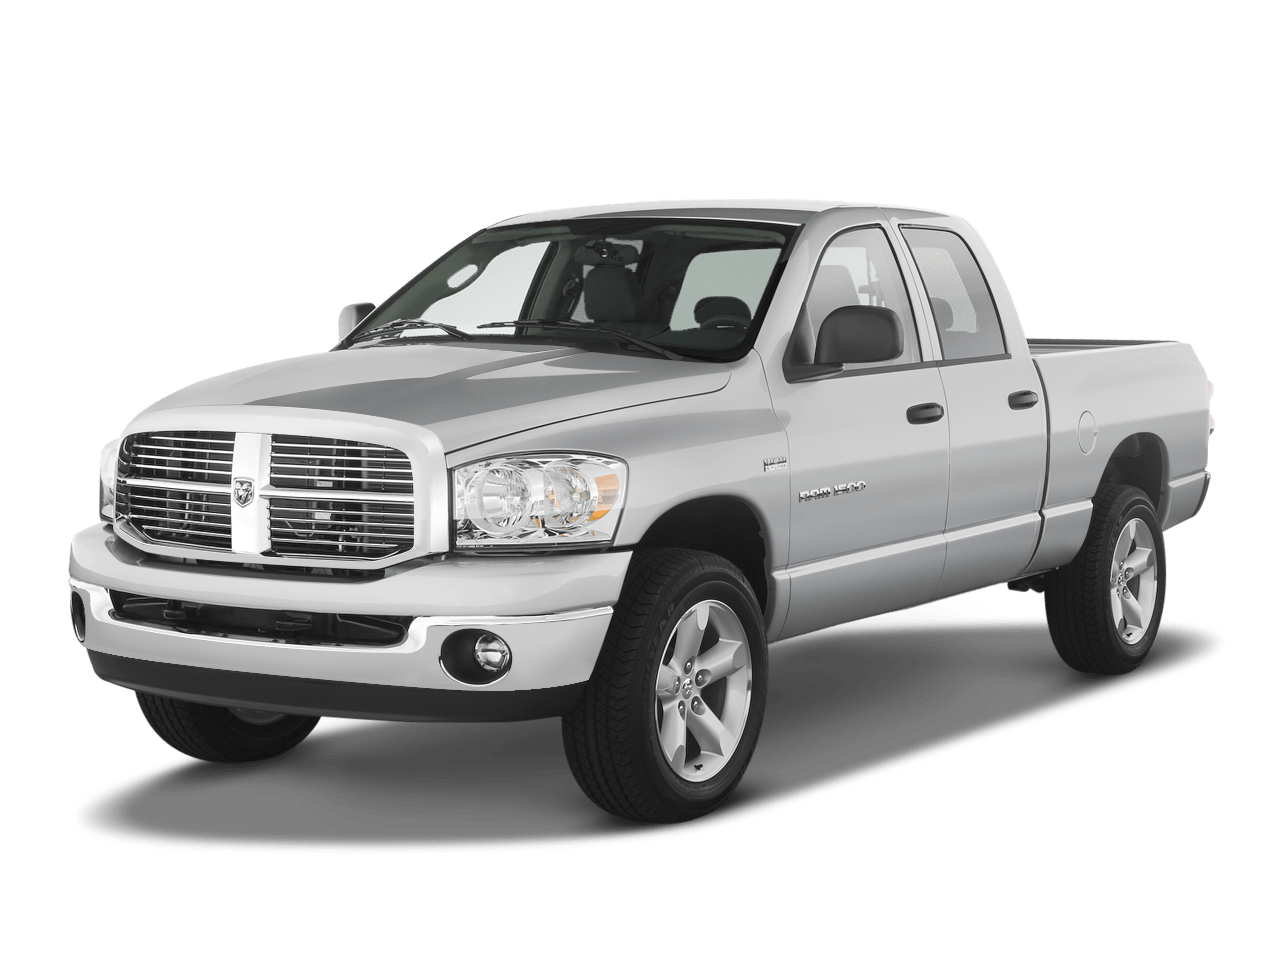 dodge ram ford truck lineup 2007 1500 reviews and rating motor trend